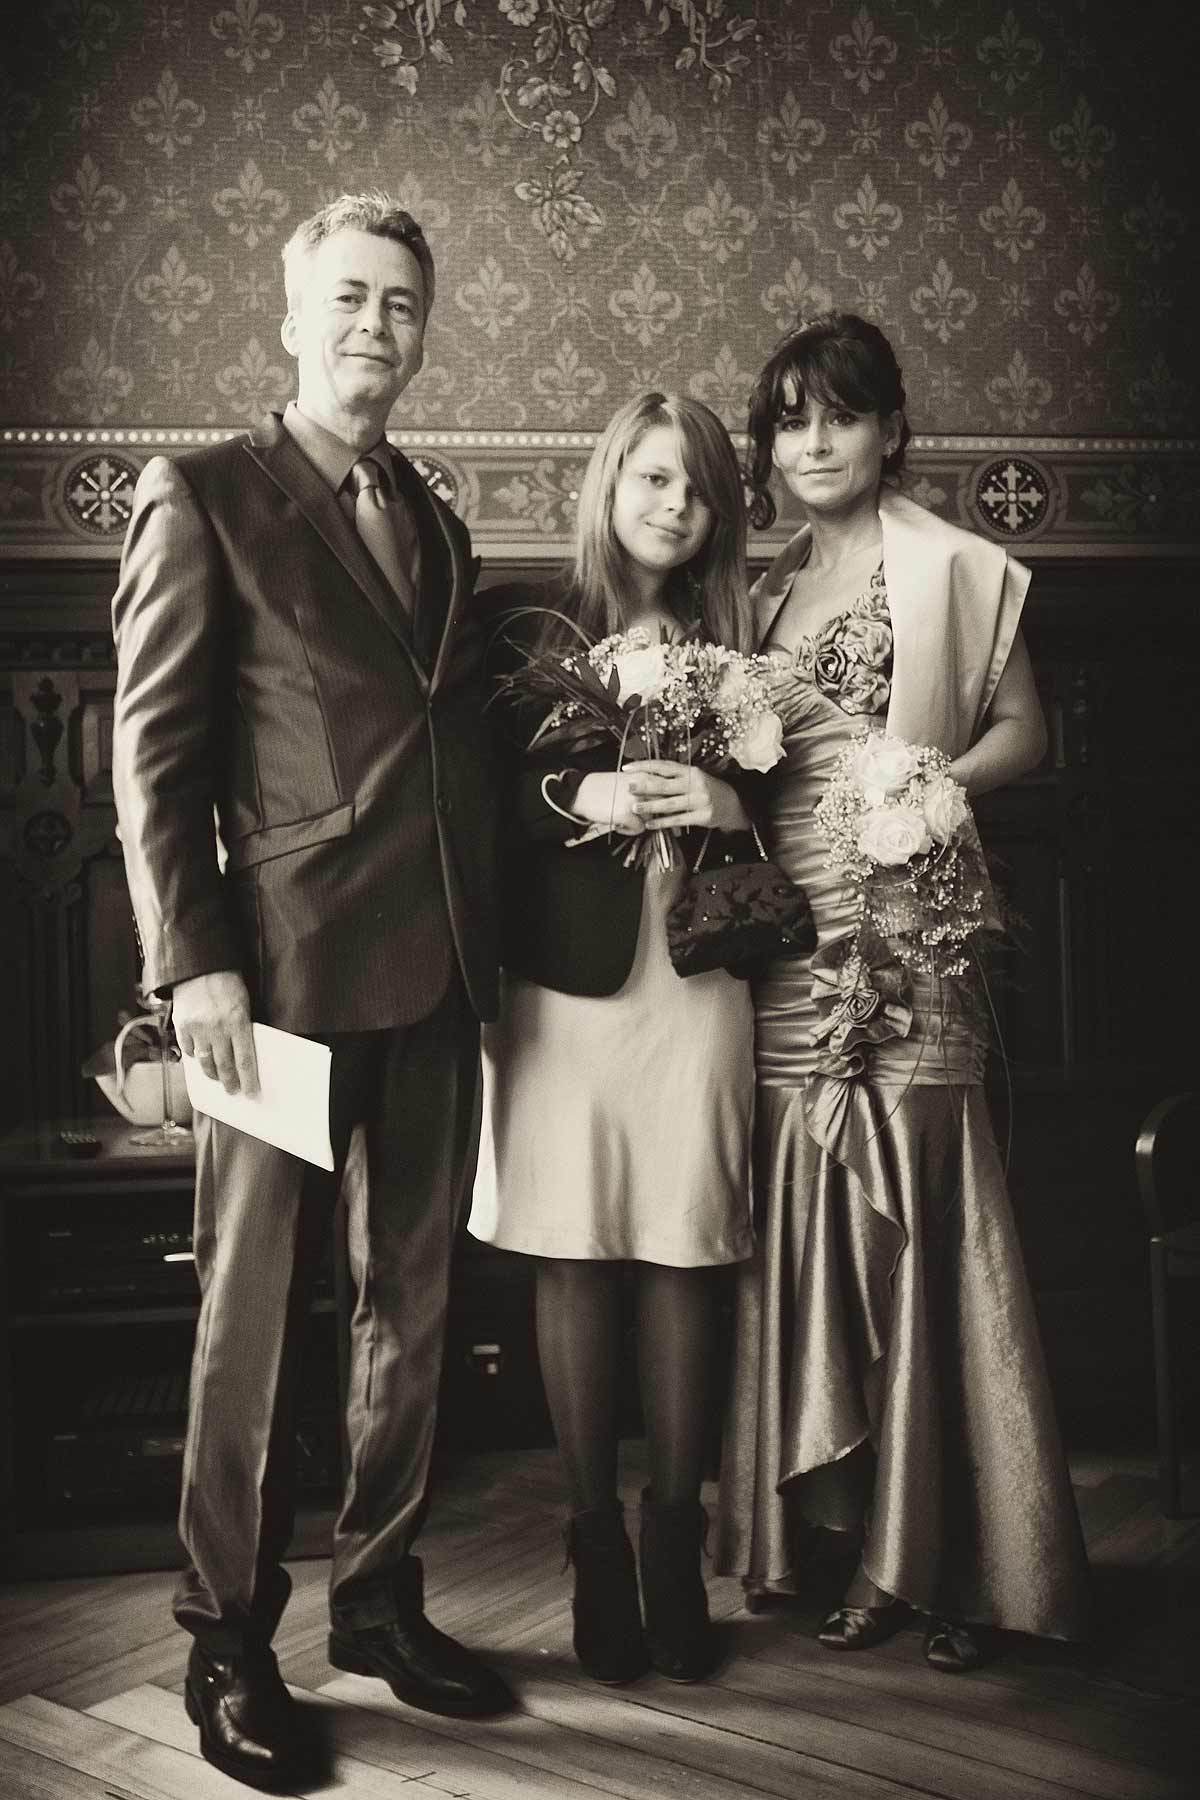 bw_wedding_kj_02